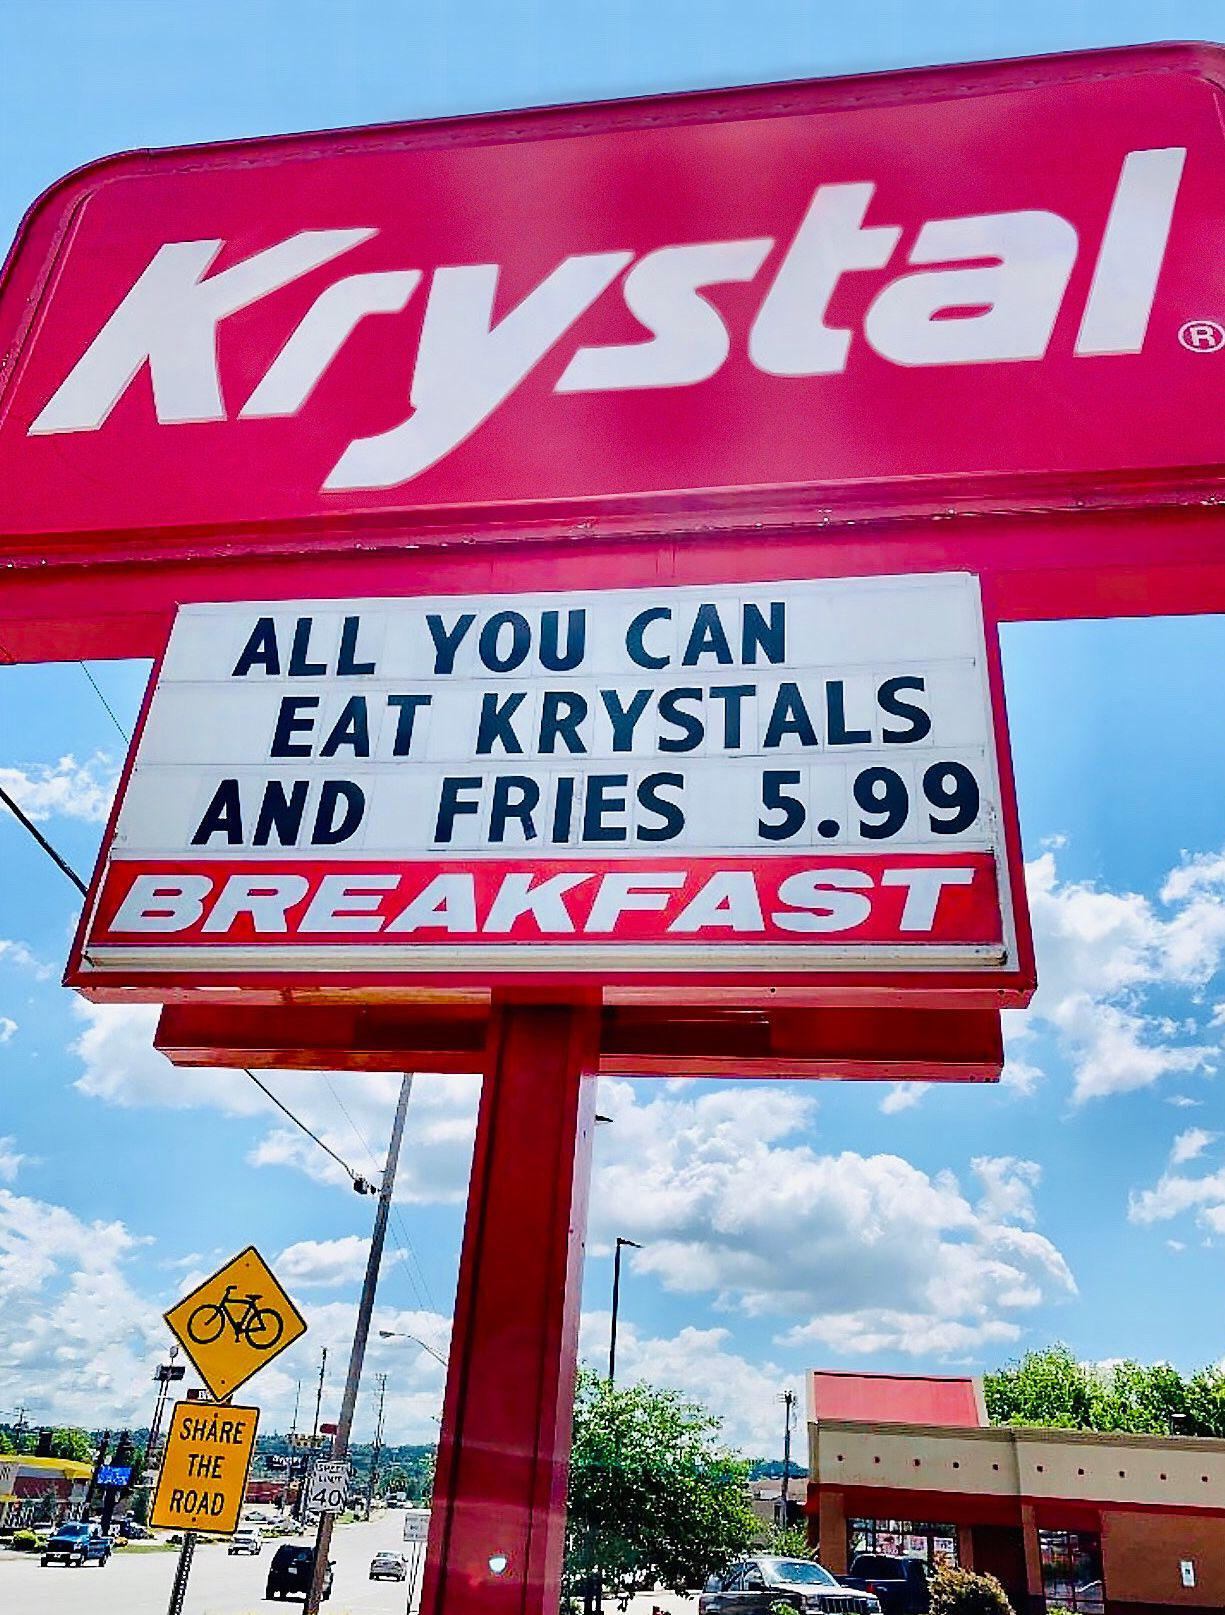 Krystal launches All-You-Can-Eat Krystals and Fries for $5.99